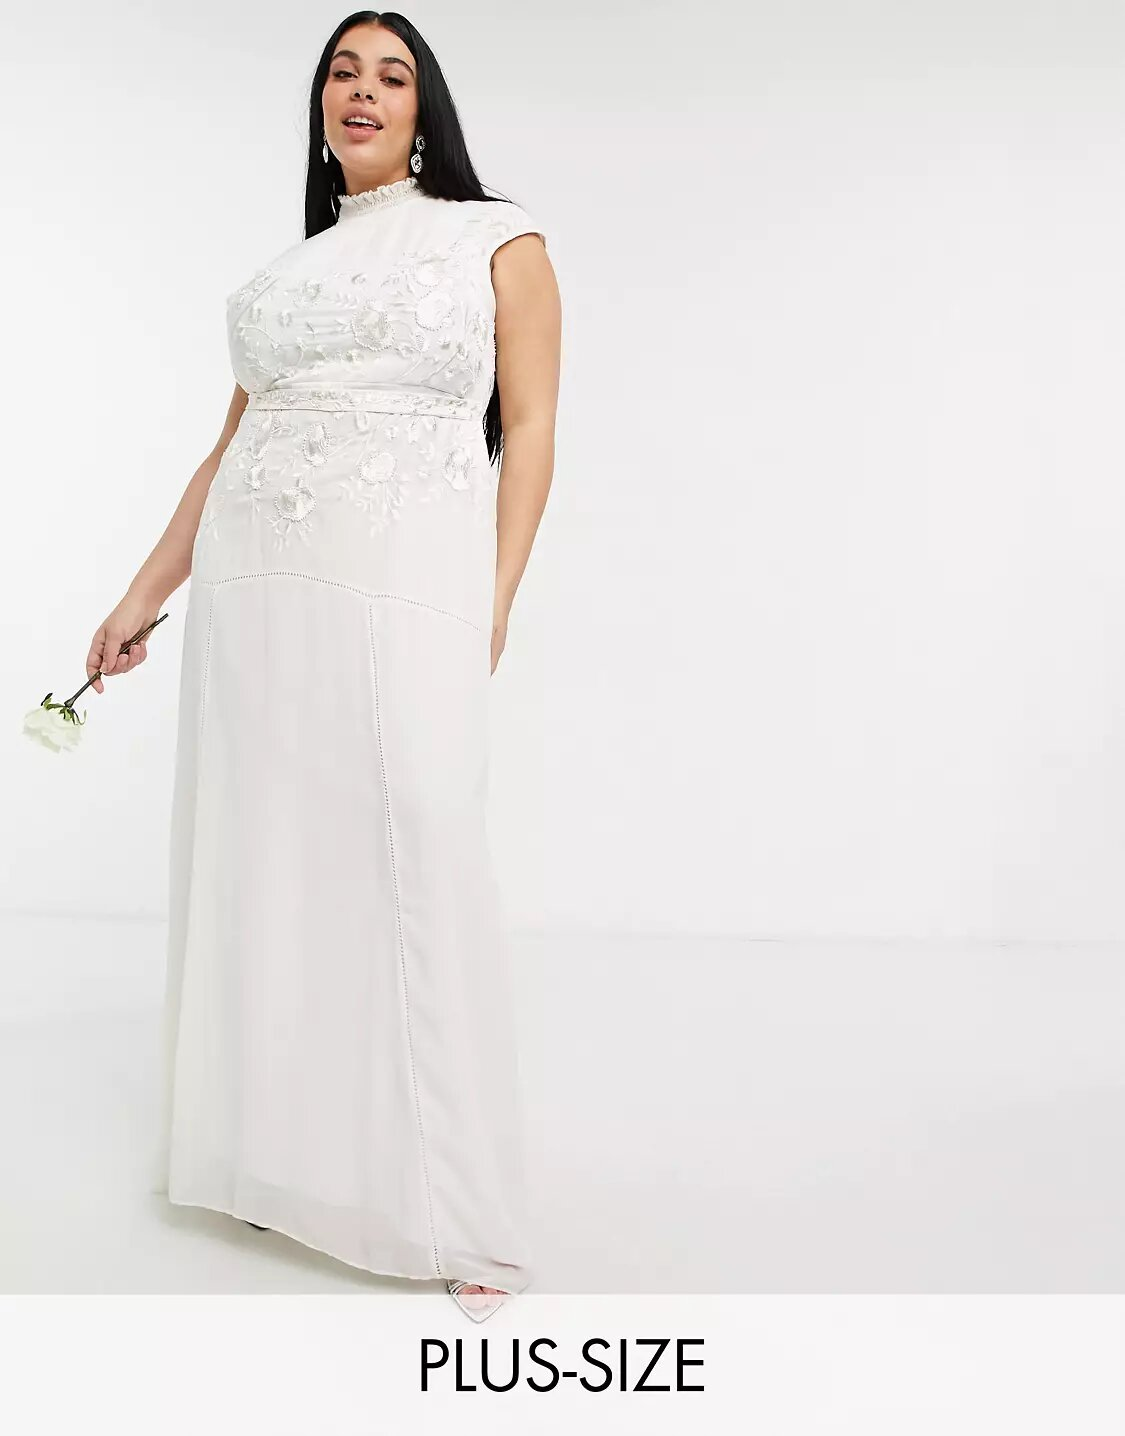 Plus Bridal floral beaded and embroidered maxi dress with keyhole back in ivory, Hope & Ivy, £150.00